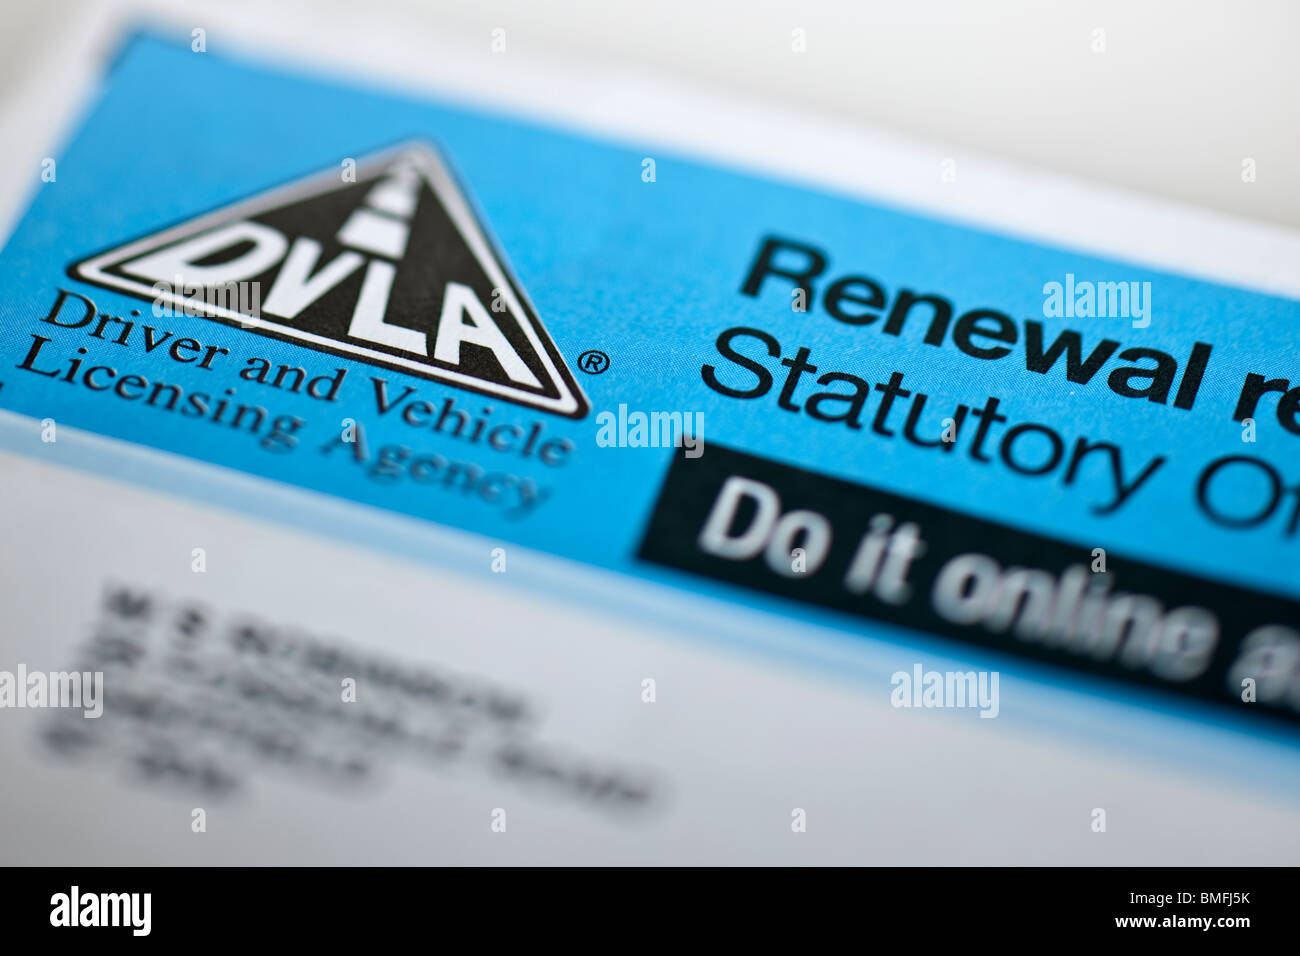 Renewal reminder for DVLA tax disc.  Editorial use only - Stock Image